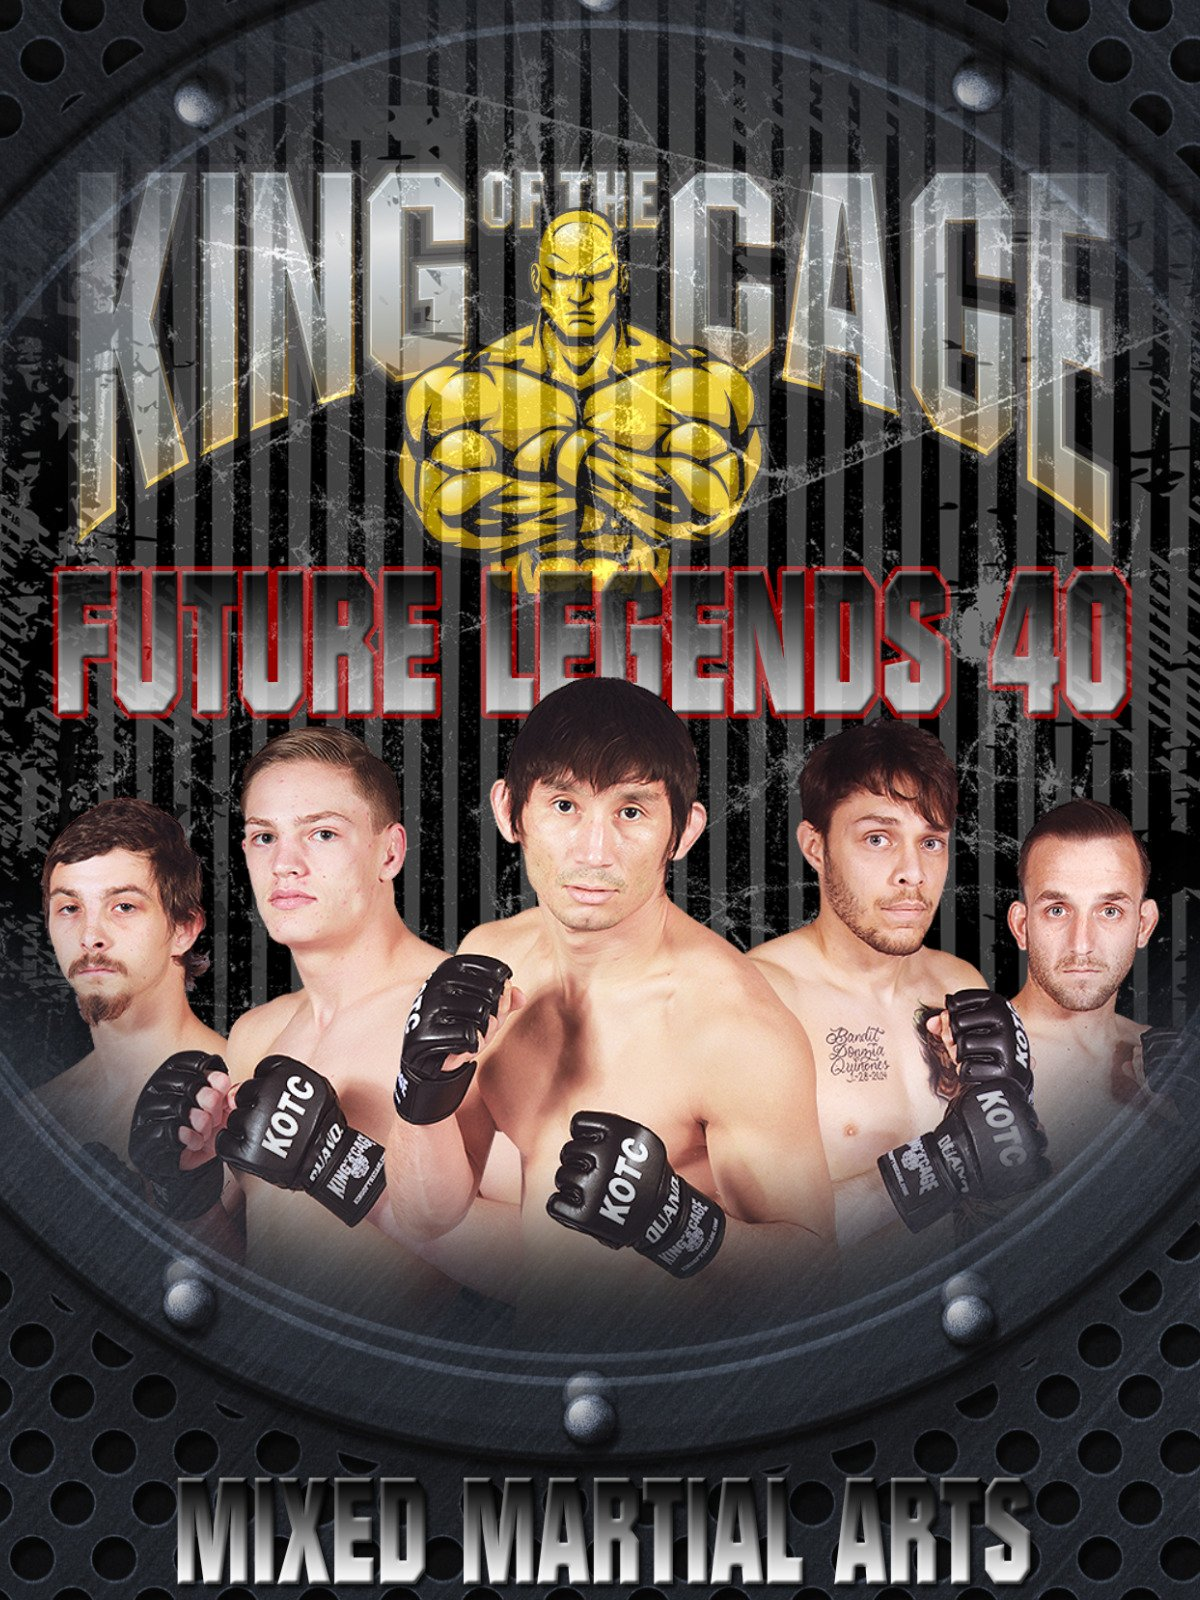 King of the Cage Future Legends 40